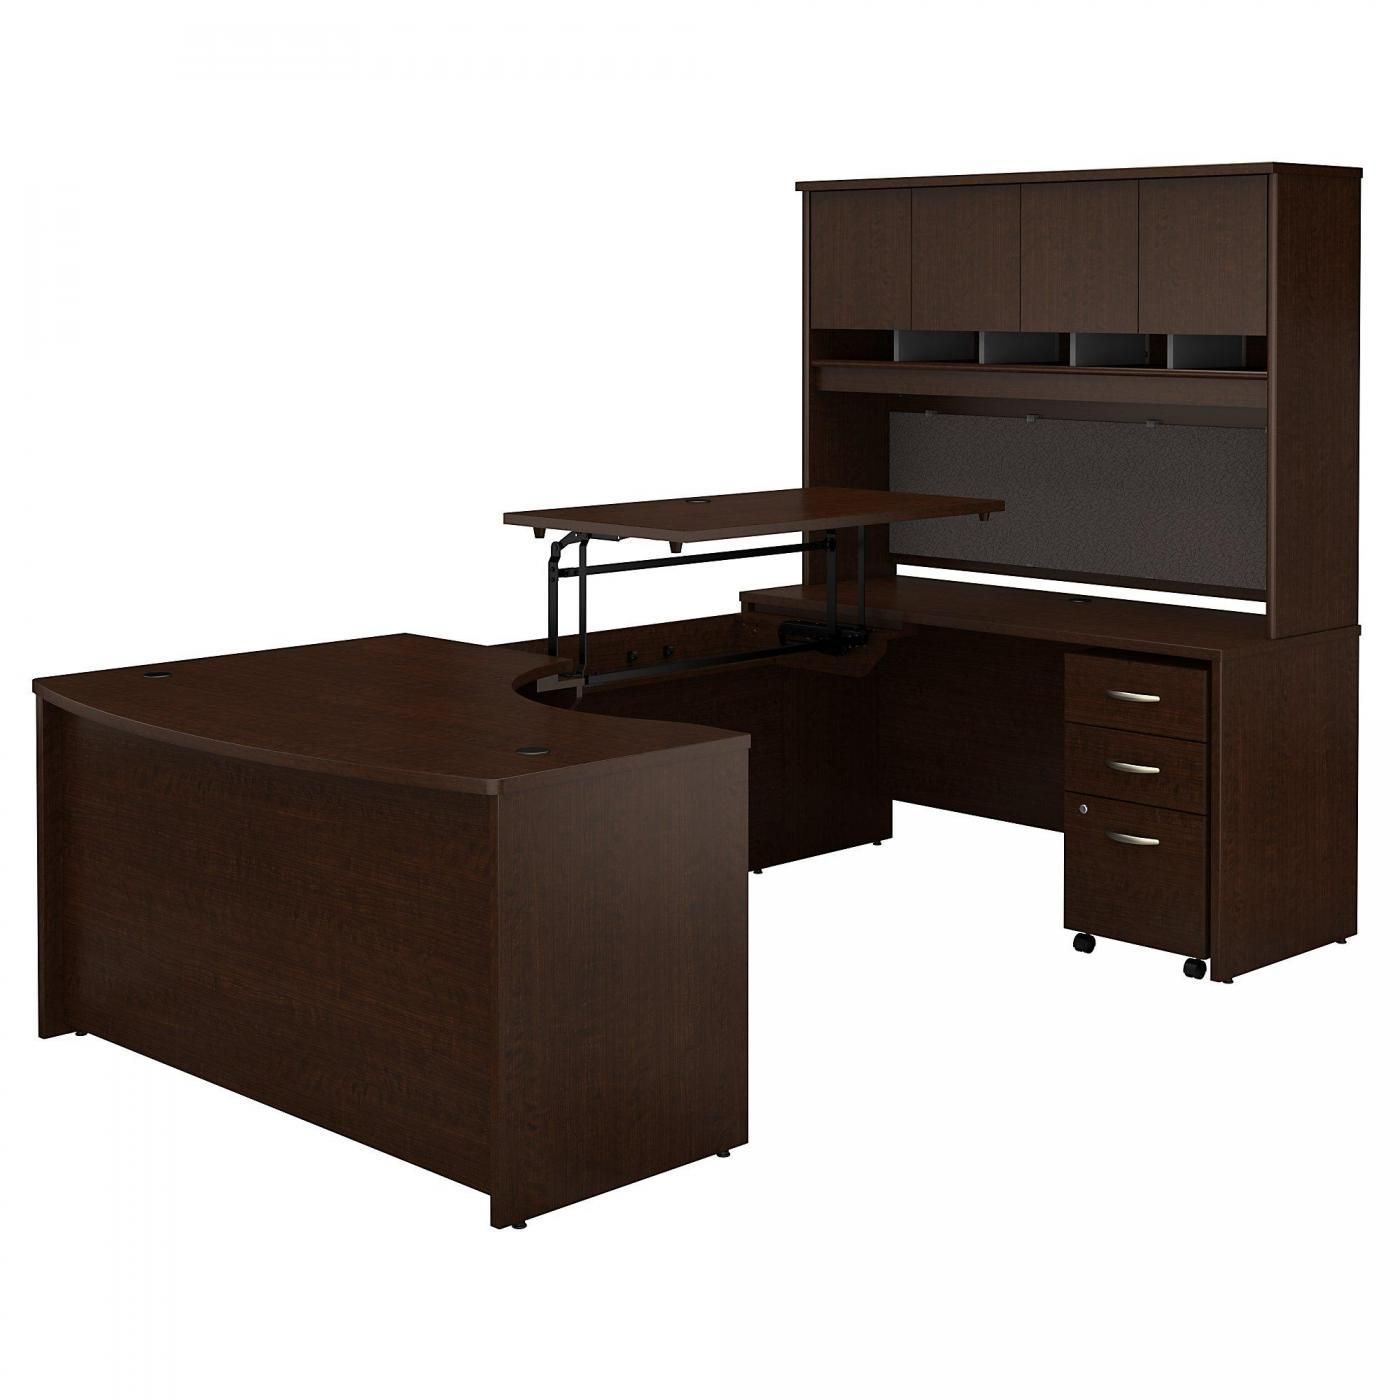 <font color=#c60><b>BUSH BUSINESS FURNITURE SERIES C 60W X 43D LEFT HAND 3 POSITION SIT TO STAND U SHAPED DESK WITH HUTCH AND MOBILE FILE CABINET. FREE SHIPPING</font></b>